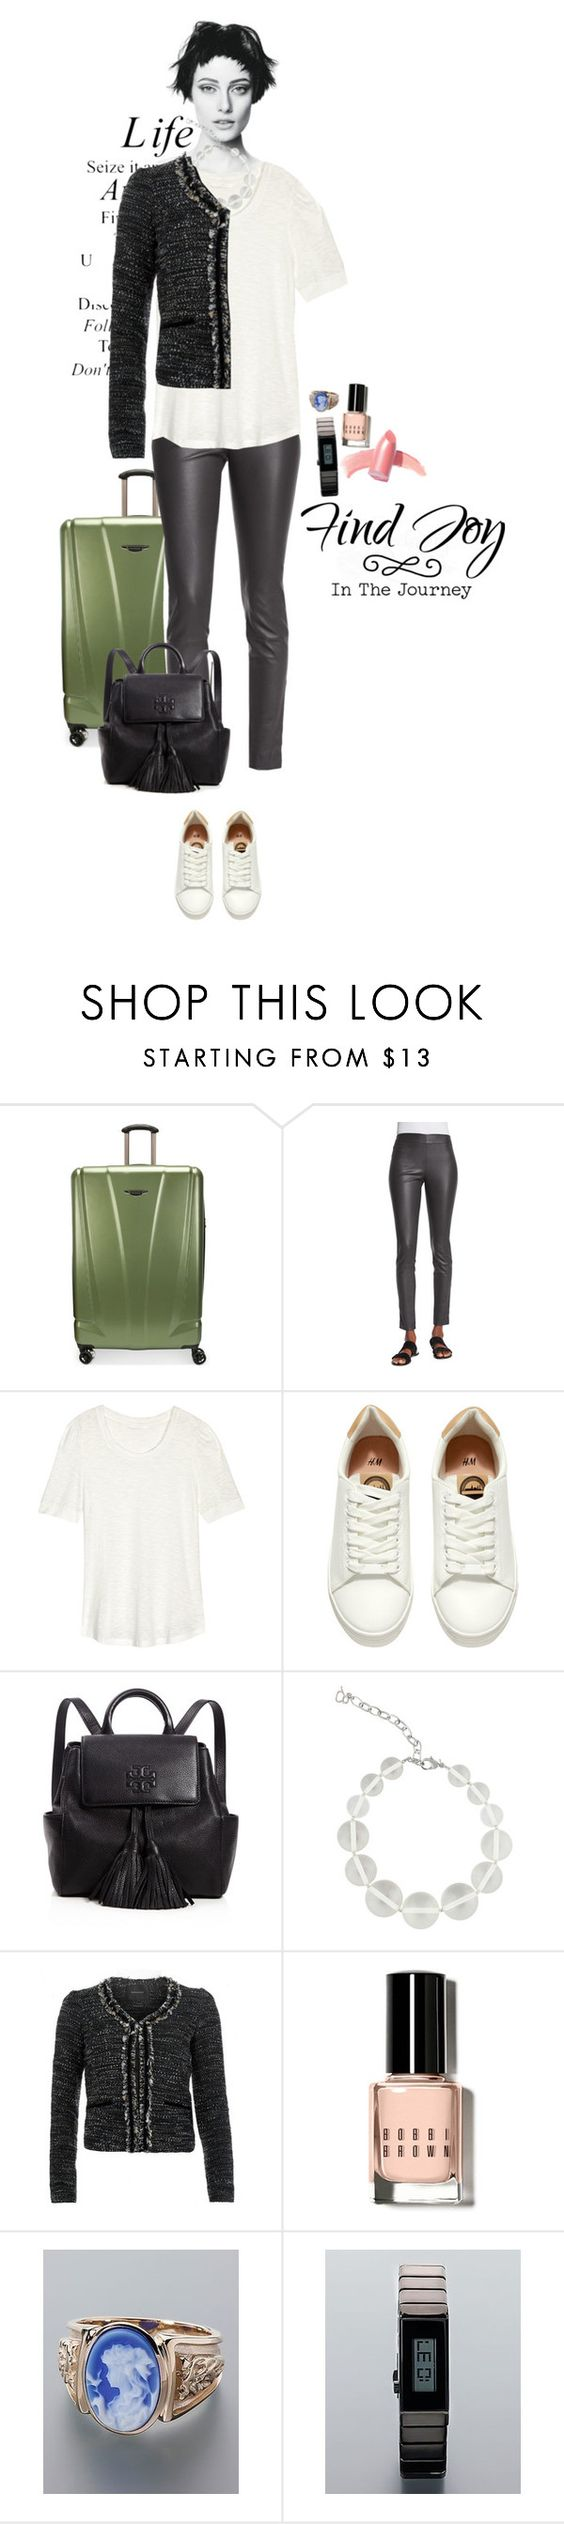 """my real outfit today"" by akchen ❤ liked on Polyvore featuring Ricardo, Garcia, The Row, H&M, Tory Burch, DIANA BROUSSARD, Maison Scotch, Bobbi Brown Cosmetics and Elizabeth Arden"